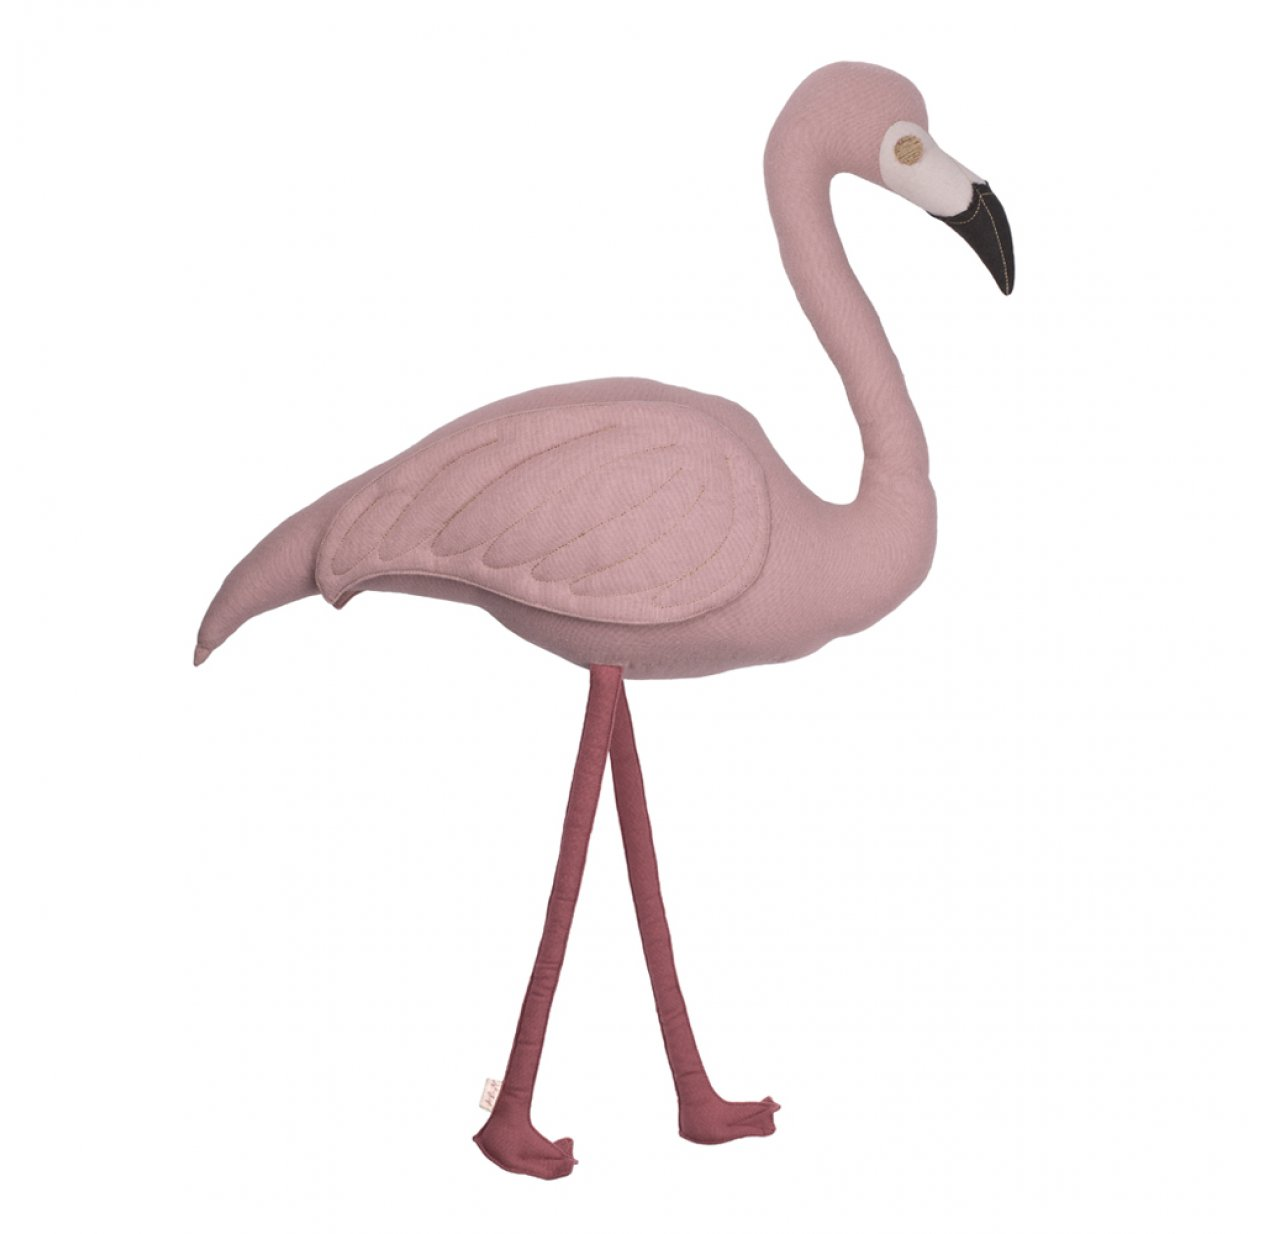 coussin flamant rose polly dusty pink vieux rose num ro 74 pour chambre enfant les enfants. Black Bedroom Furniture Sets. Home Design Ideas